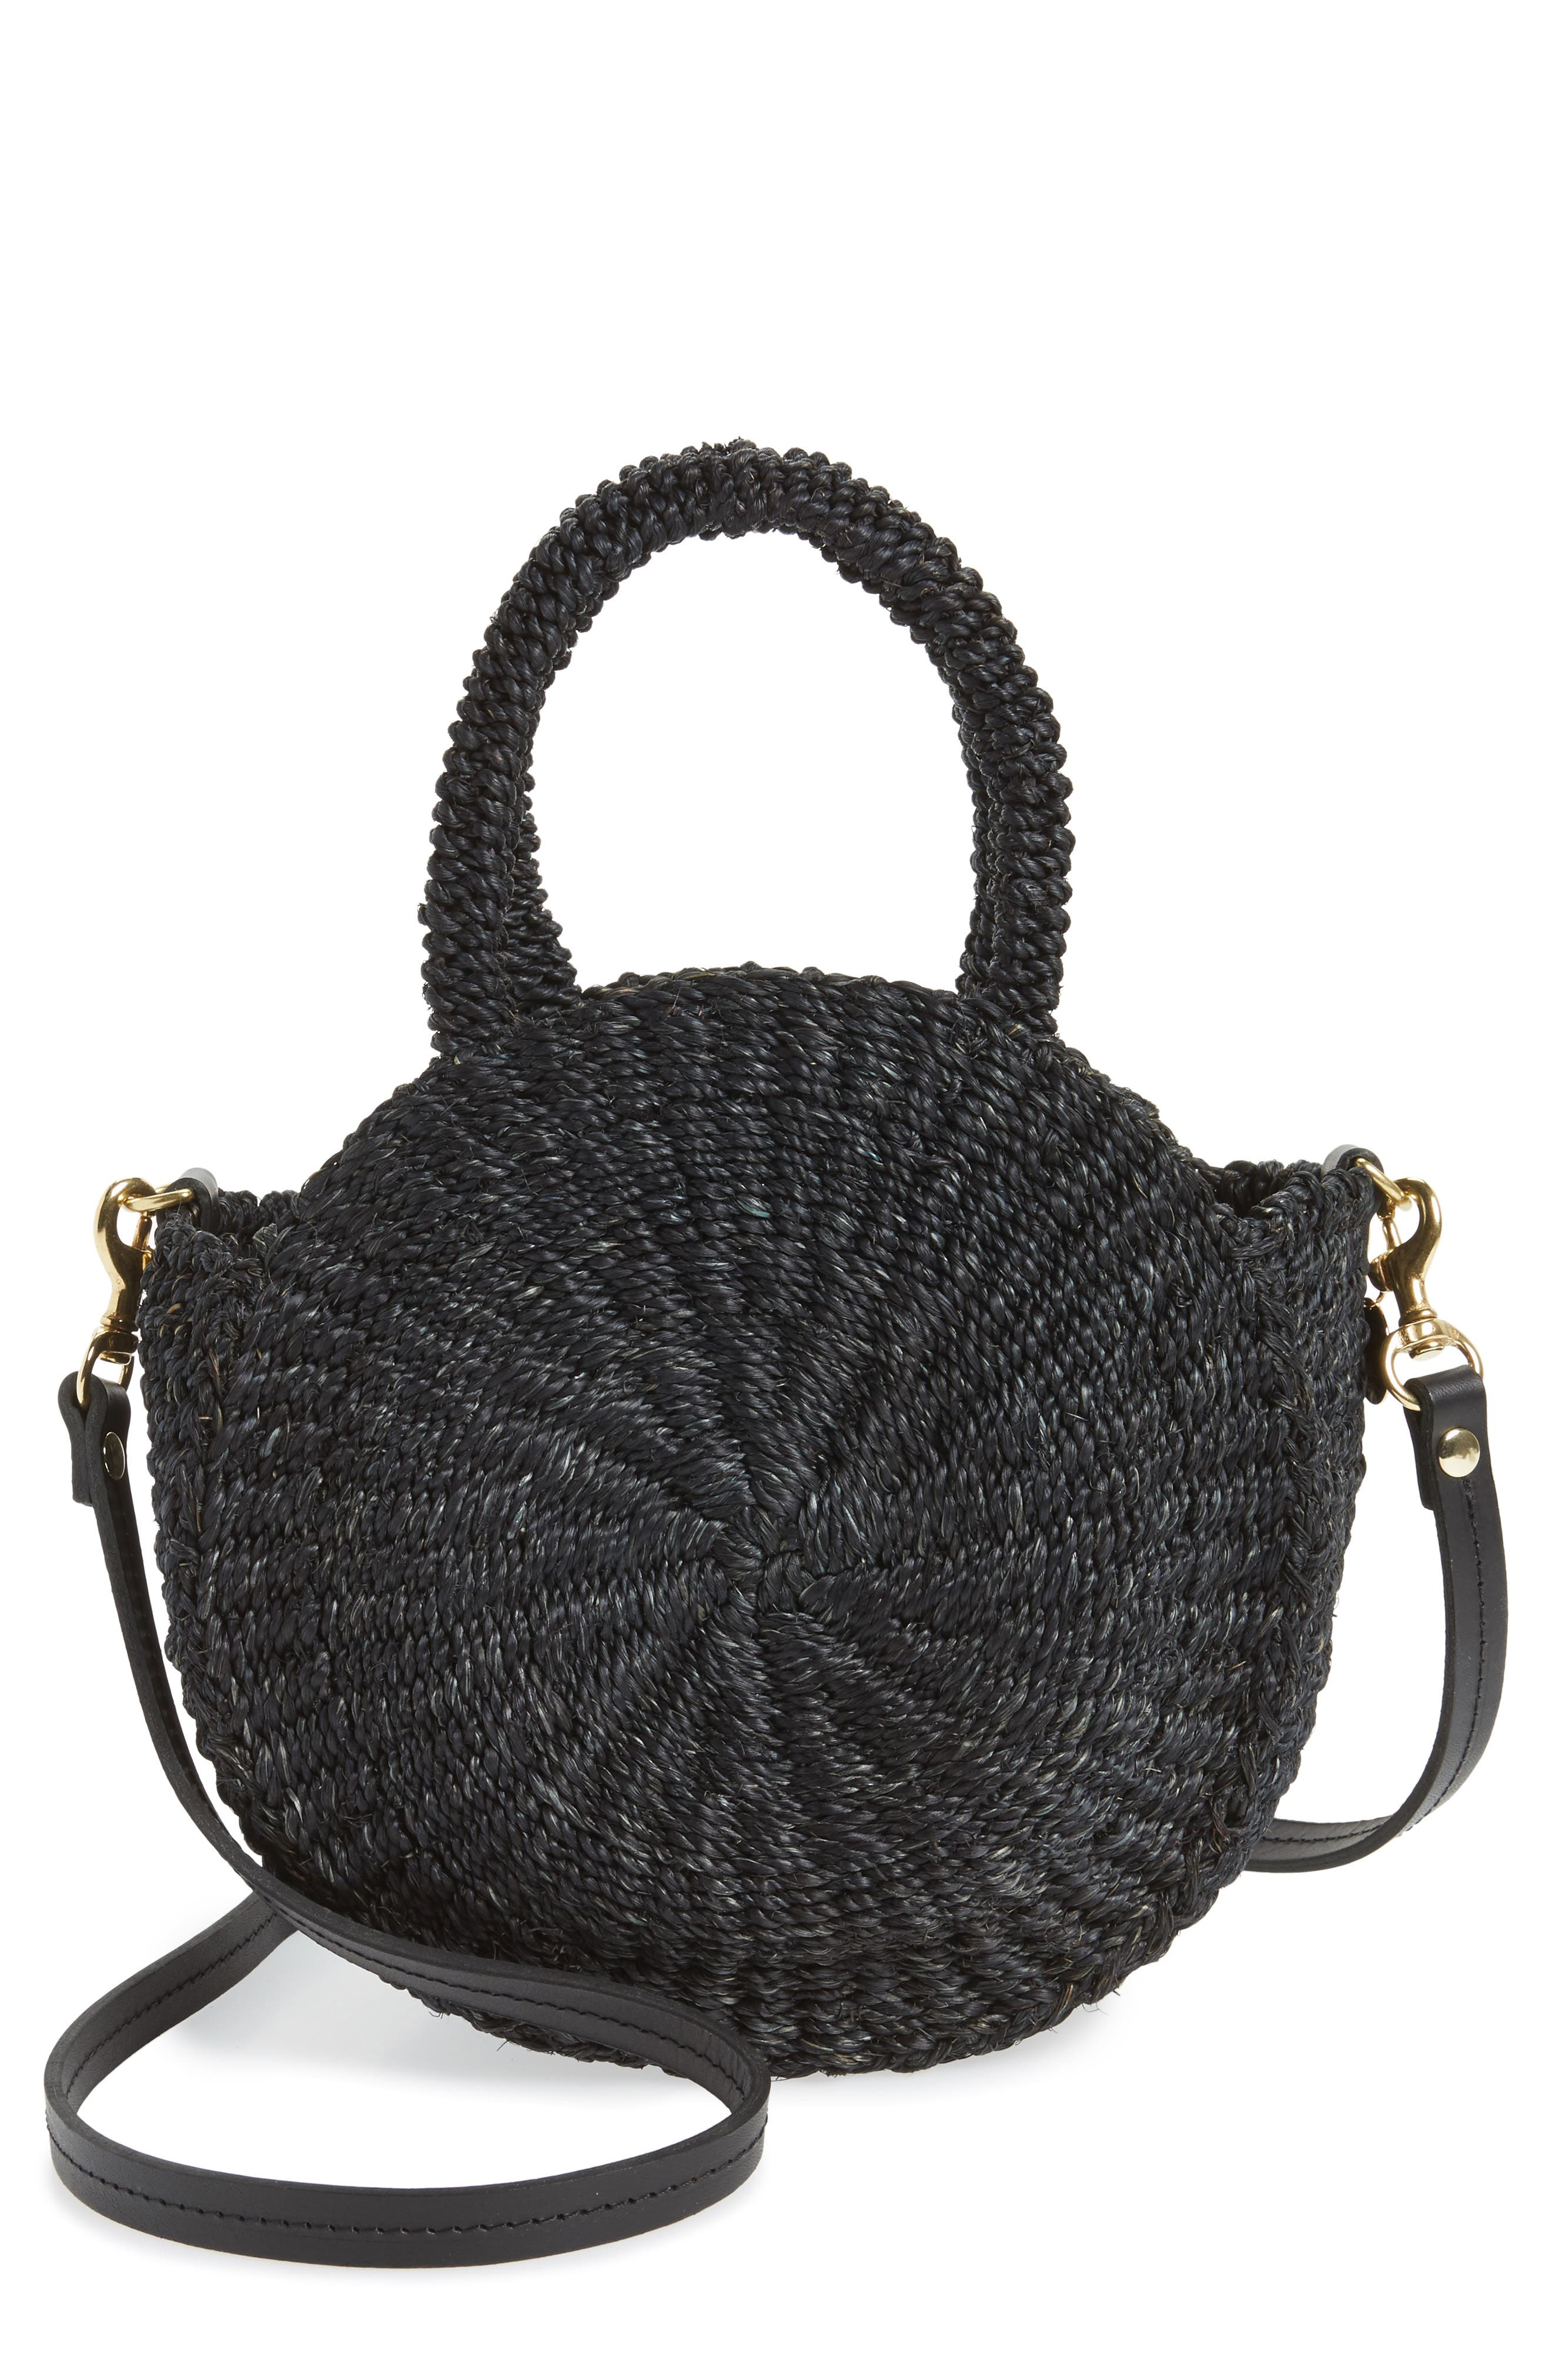 Alternate Image 1 Selected - Clare V. Petite Alice Straw Bag